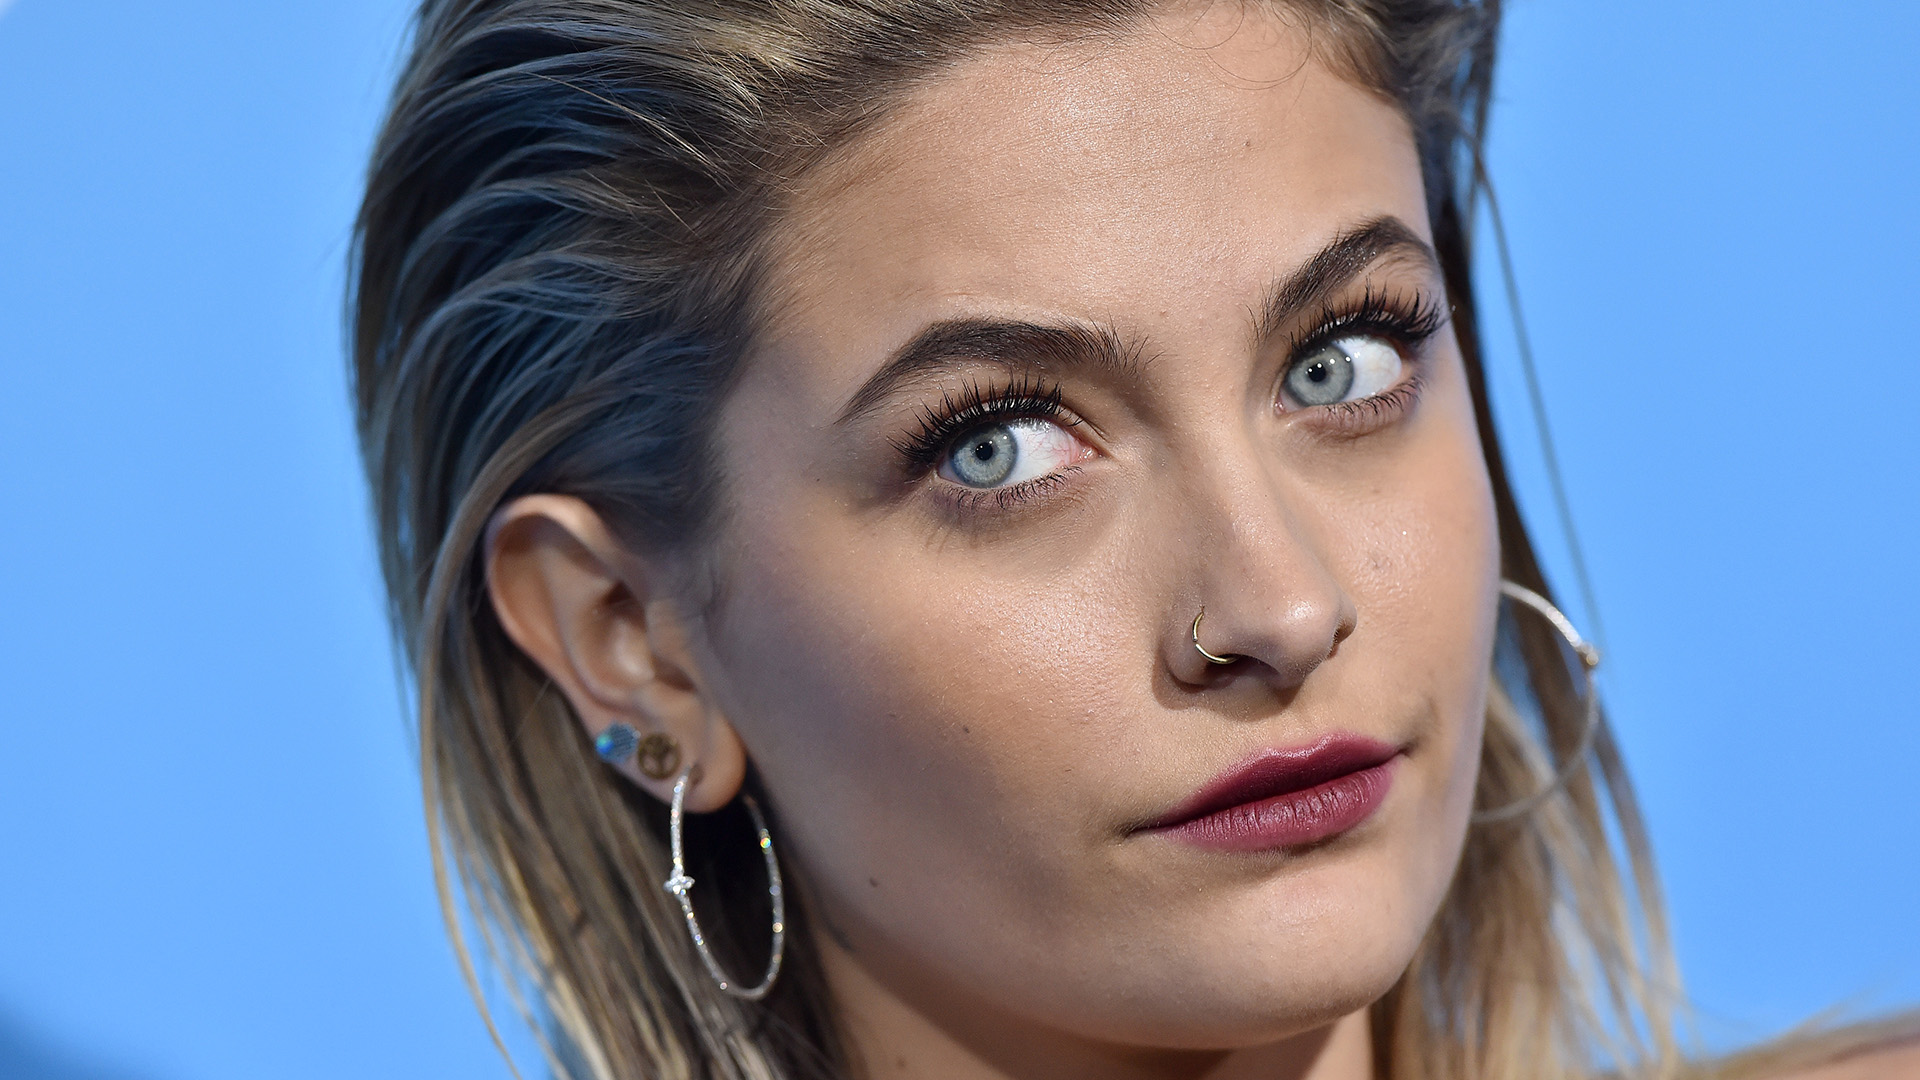 Paris Jackson Schools Troll Who Said Her Dad Would Be 'Upset' by Her Smoking Weed